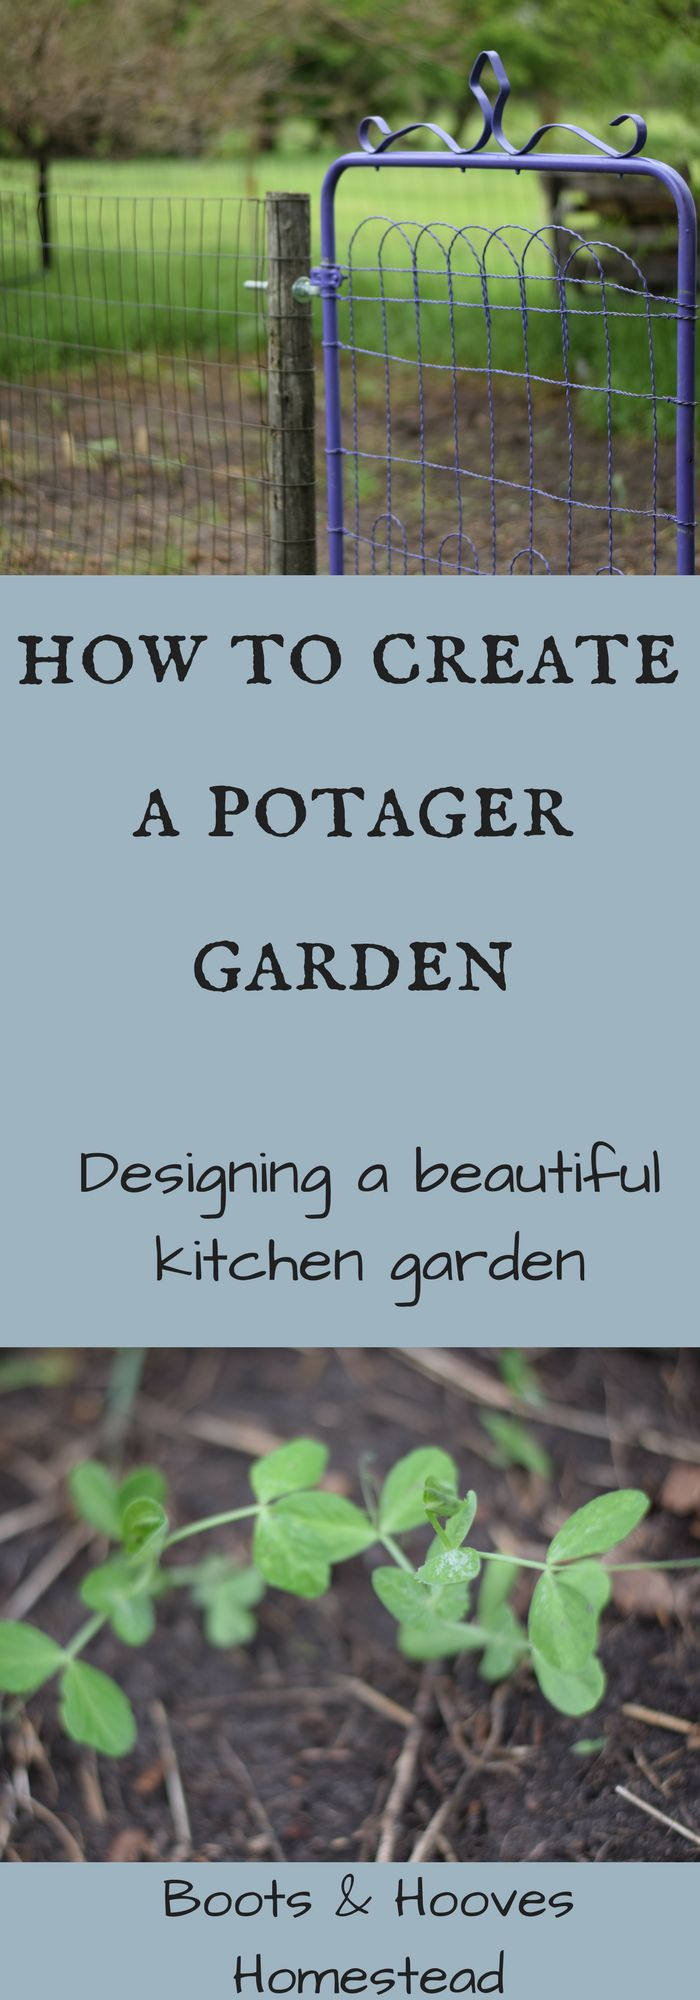 How to Create a Potager Garden - Boots & Hooves Homestead